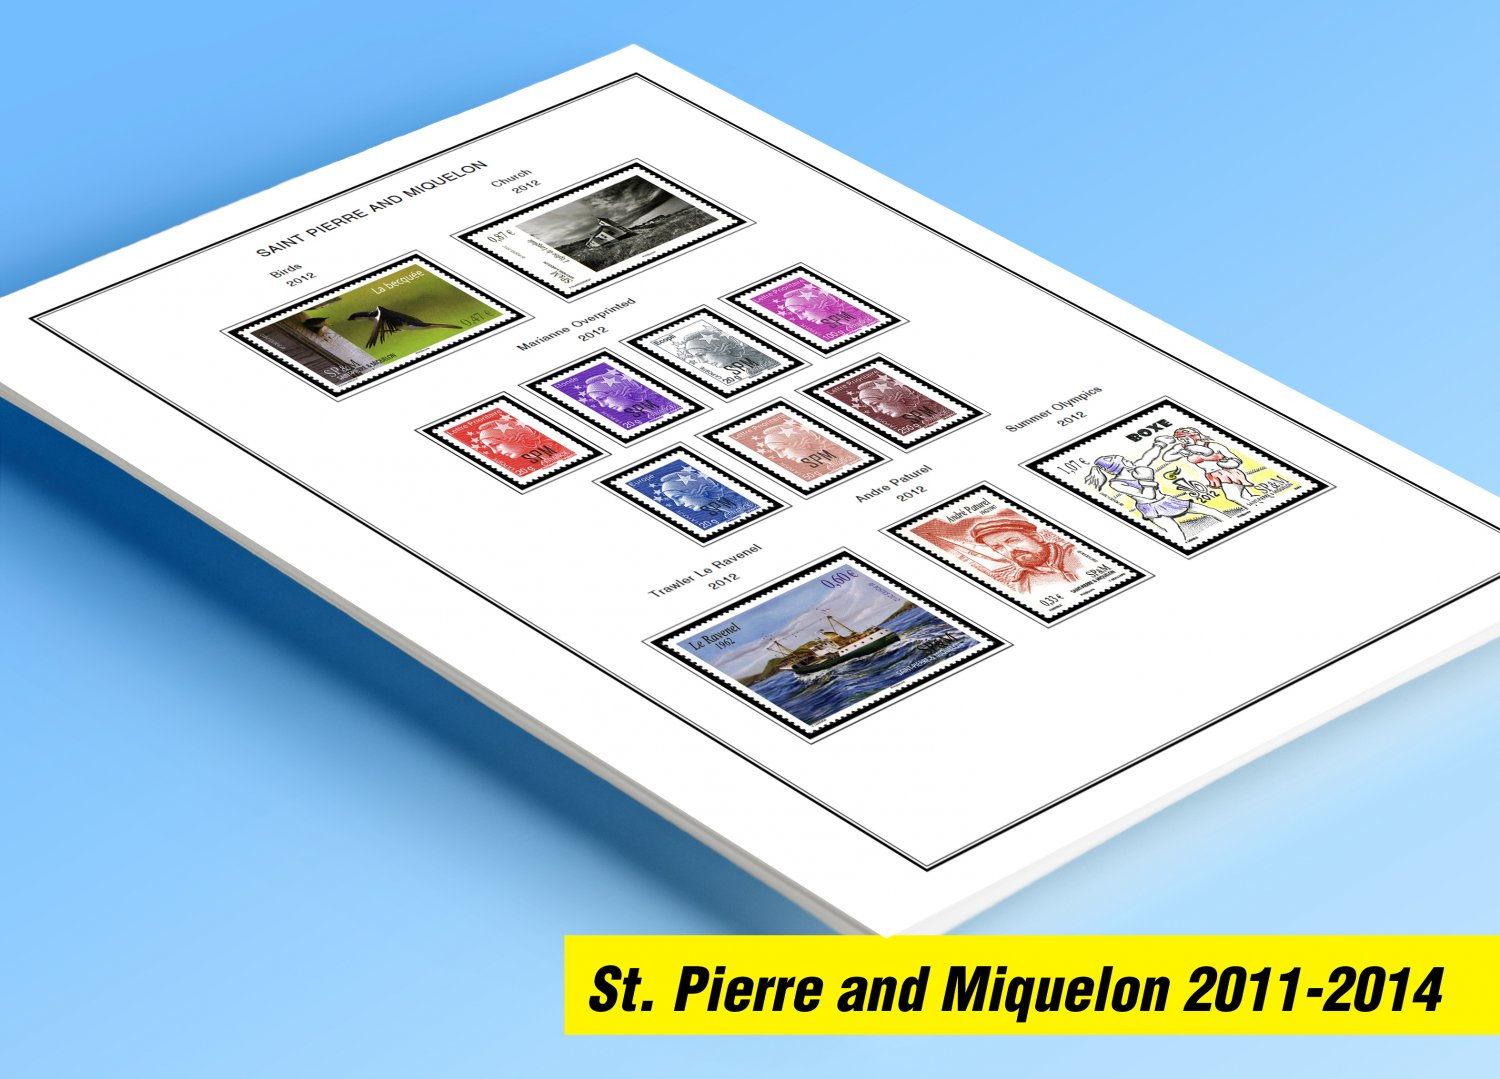 COLOR PRINTED ST. PIERRE AND MIQUELON 2011-2014 STAMP ALBUM PAGES (17 illustrated pages)